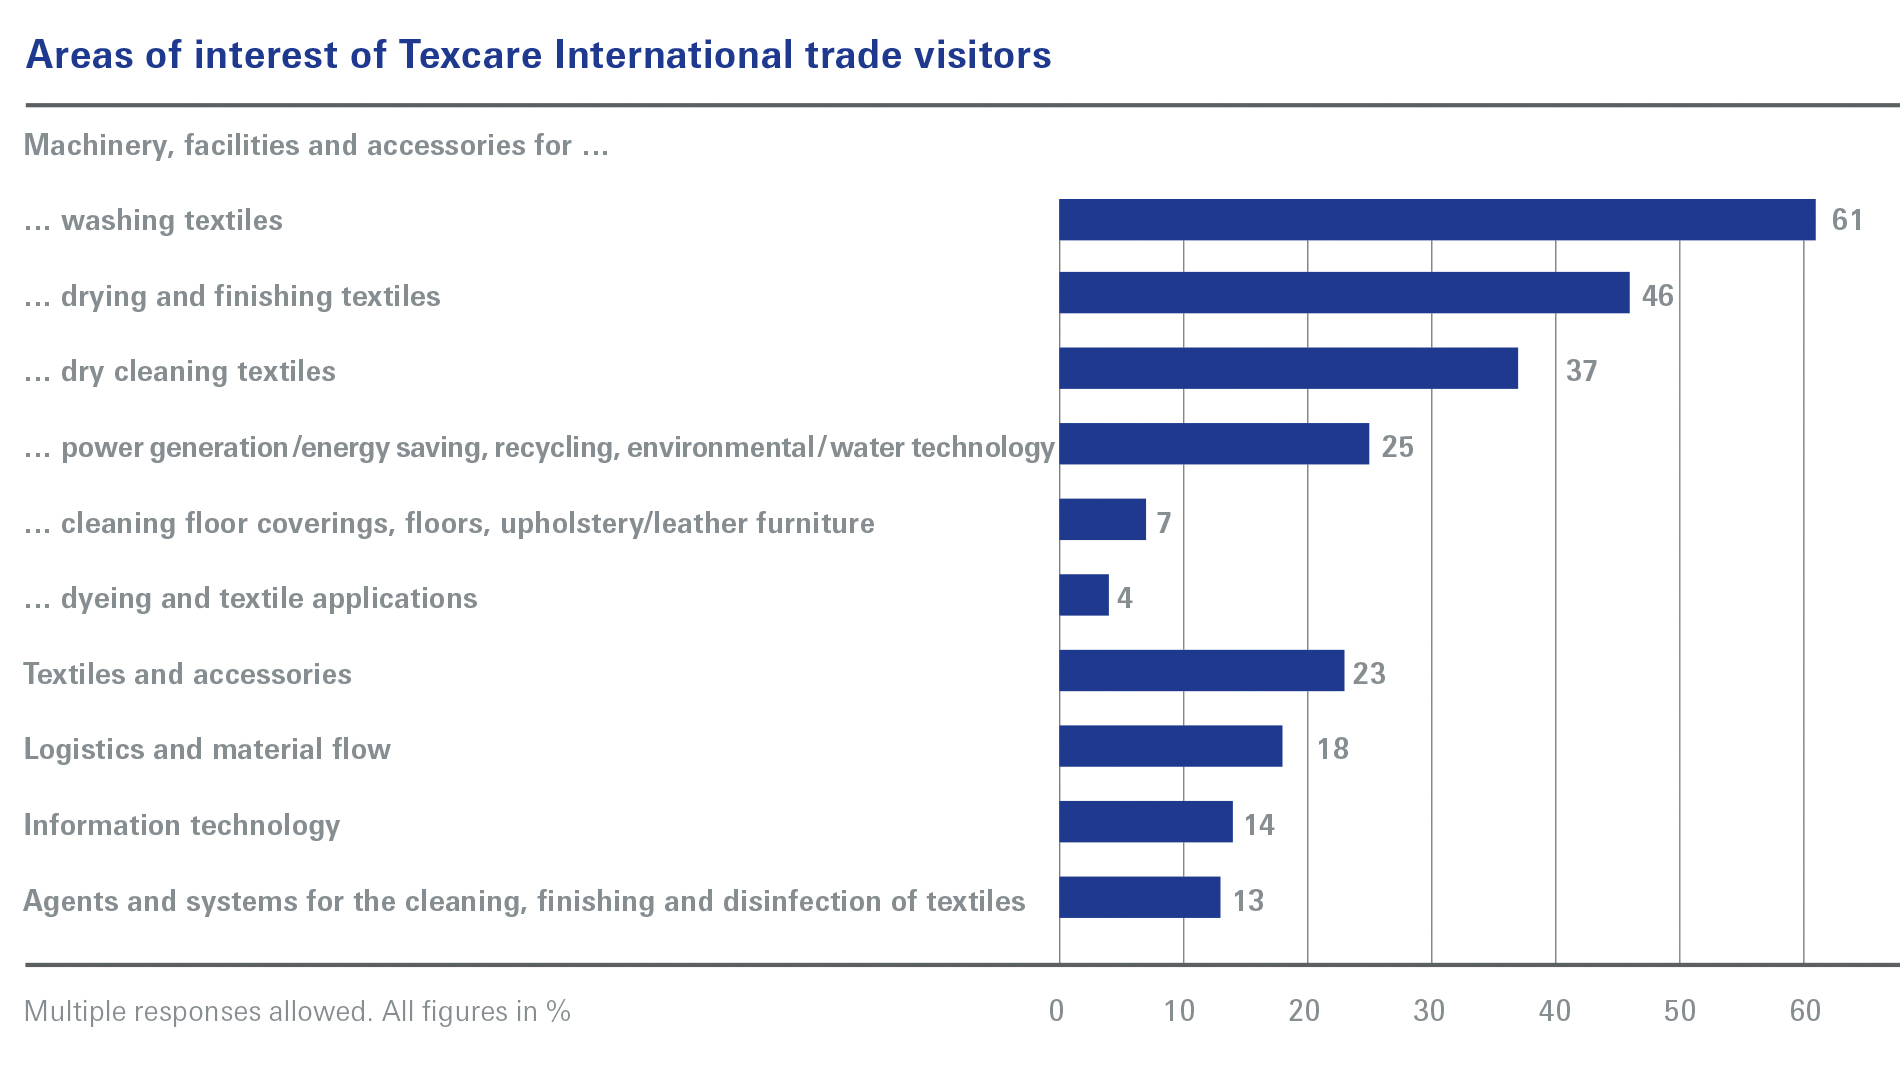 Areas of interest of Texcare International trade visitors